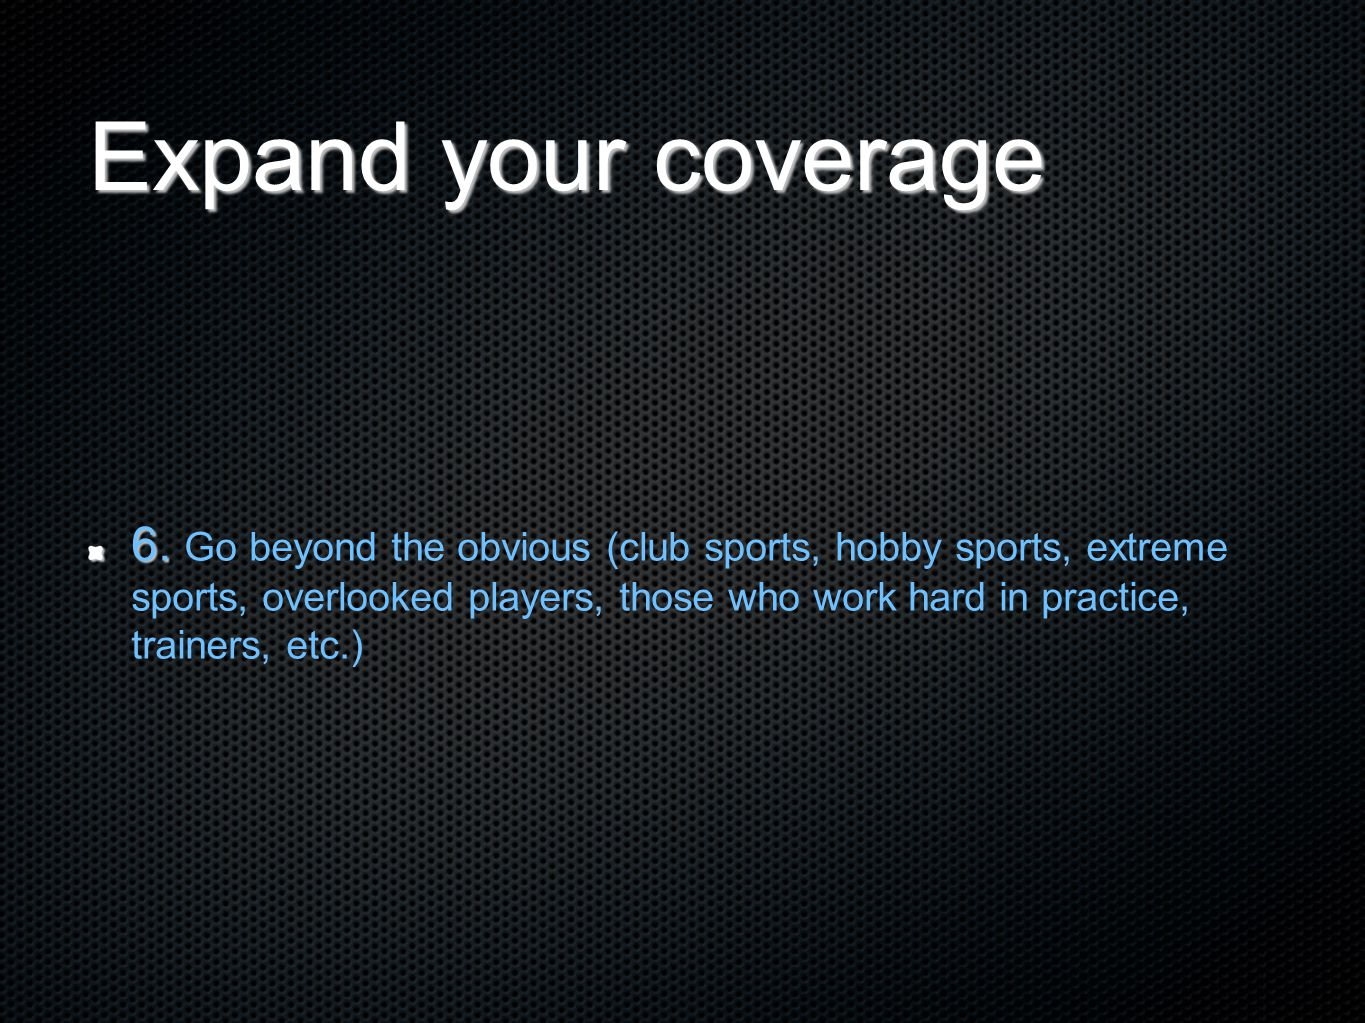 Expand your coverage 6. 6. Go beyond the obvious (club sports, hobby sports, extreme sports, overlooked players, those who work hard in practice, trai